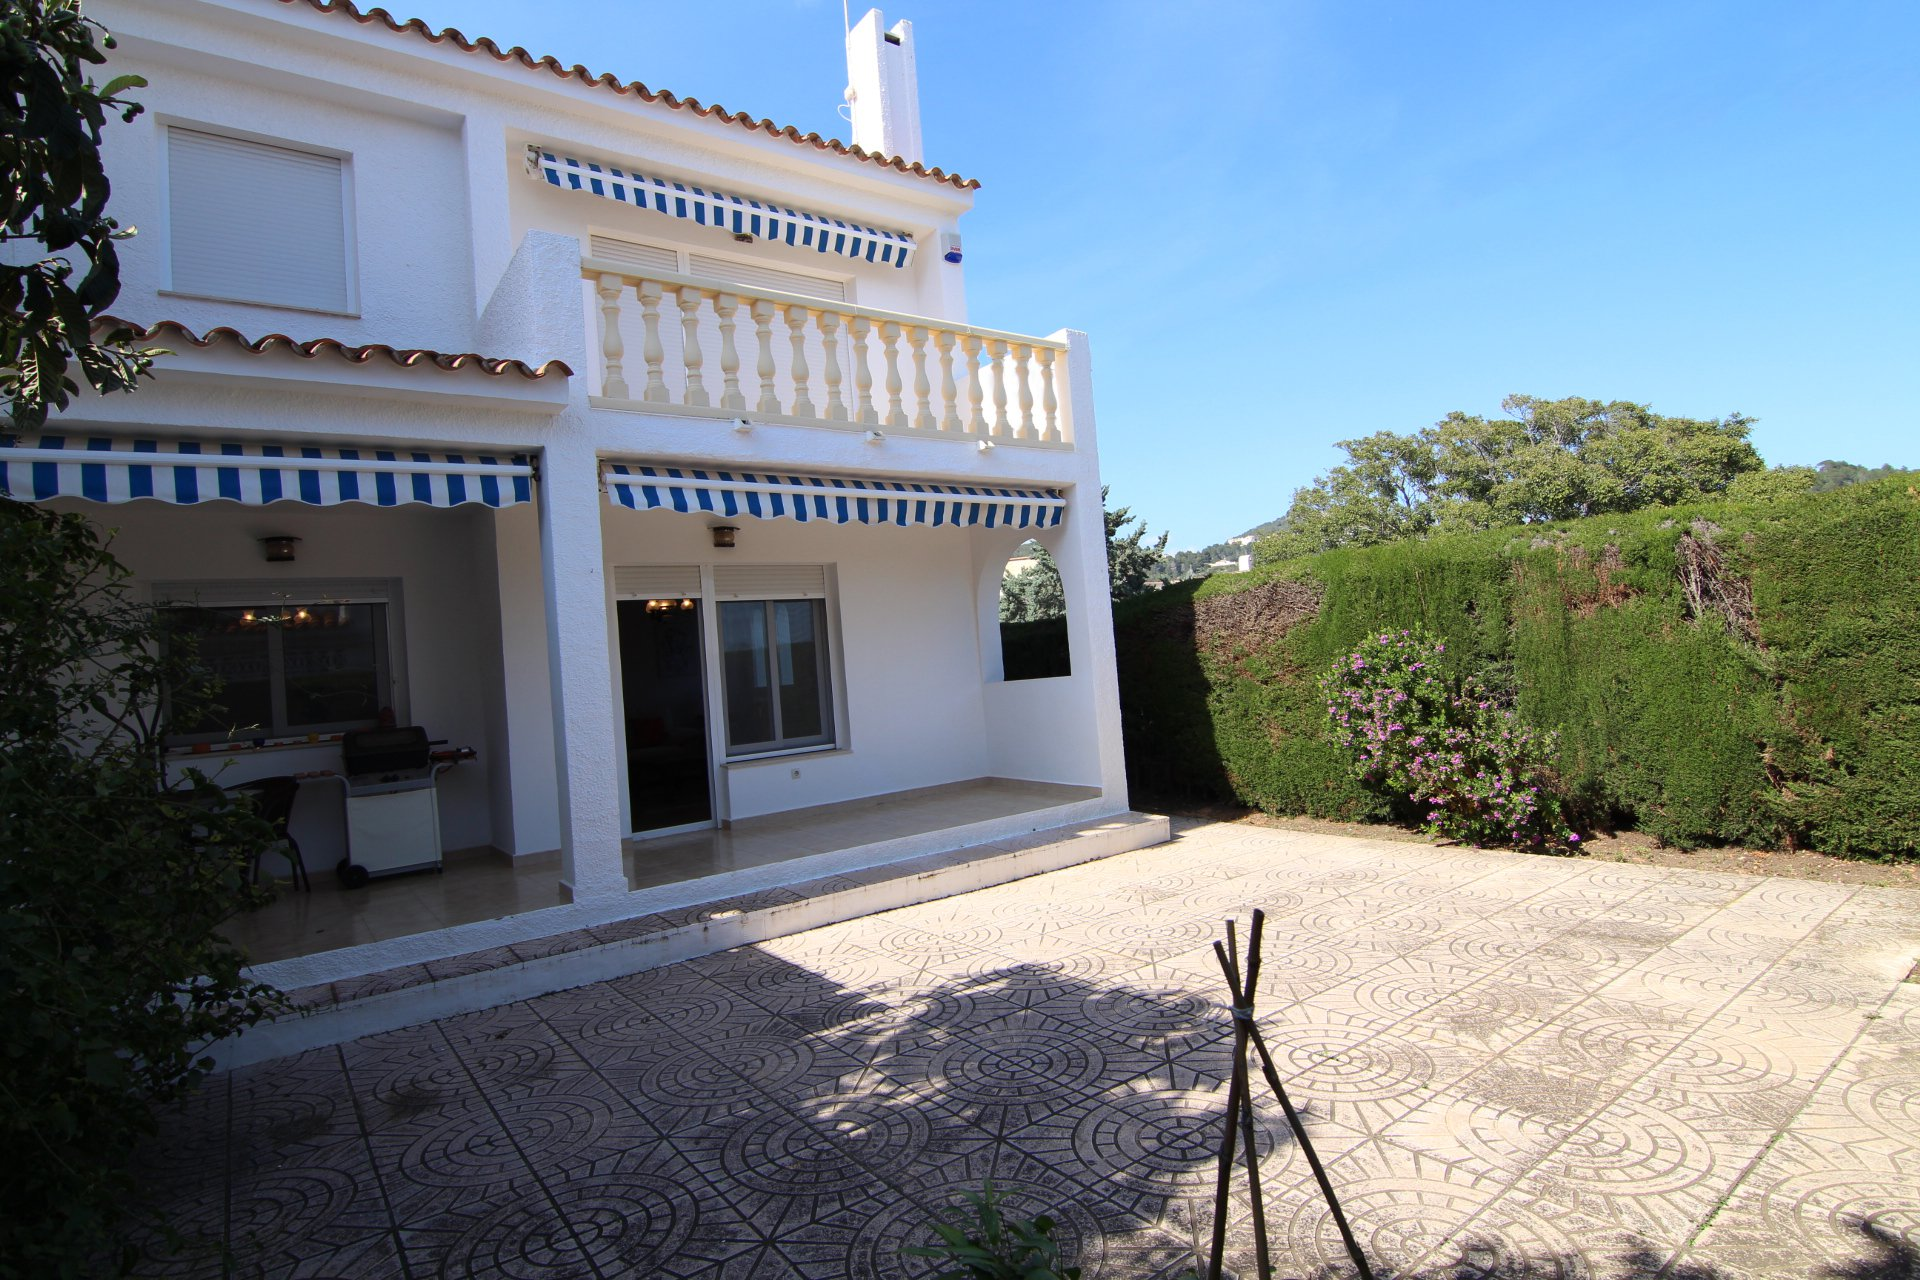 Semi-detached 3-bedroom villa close to town and beaches